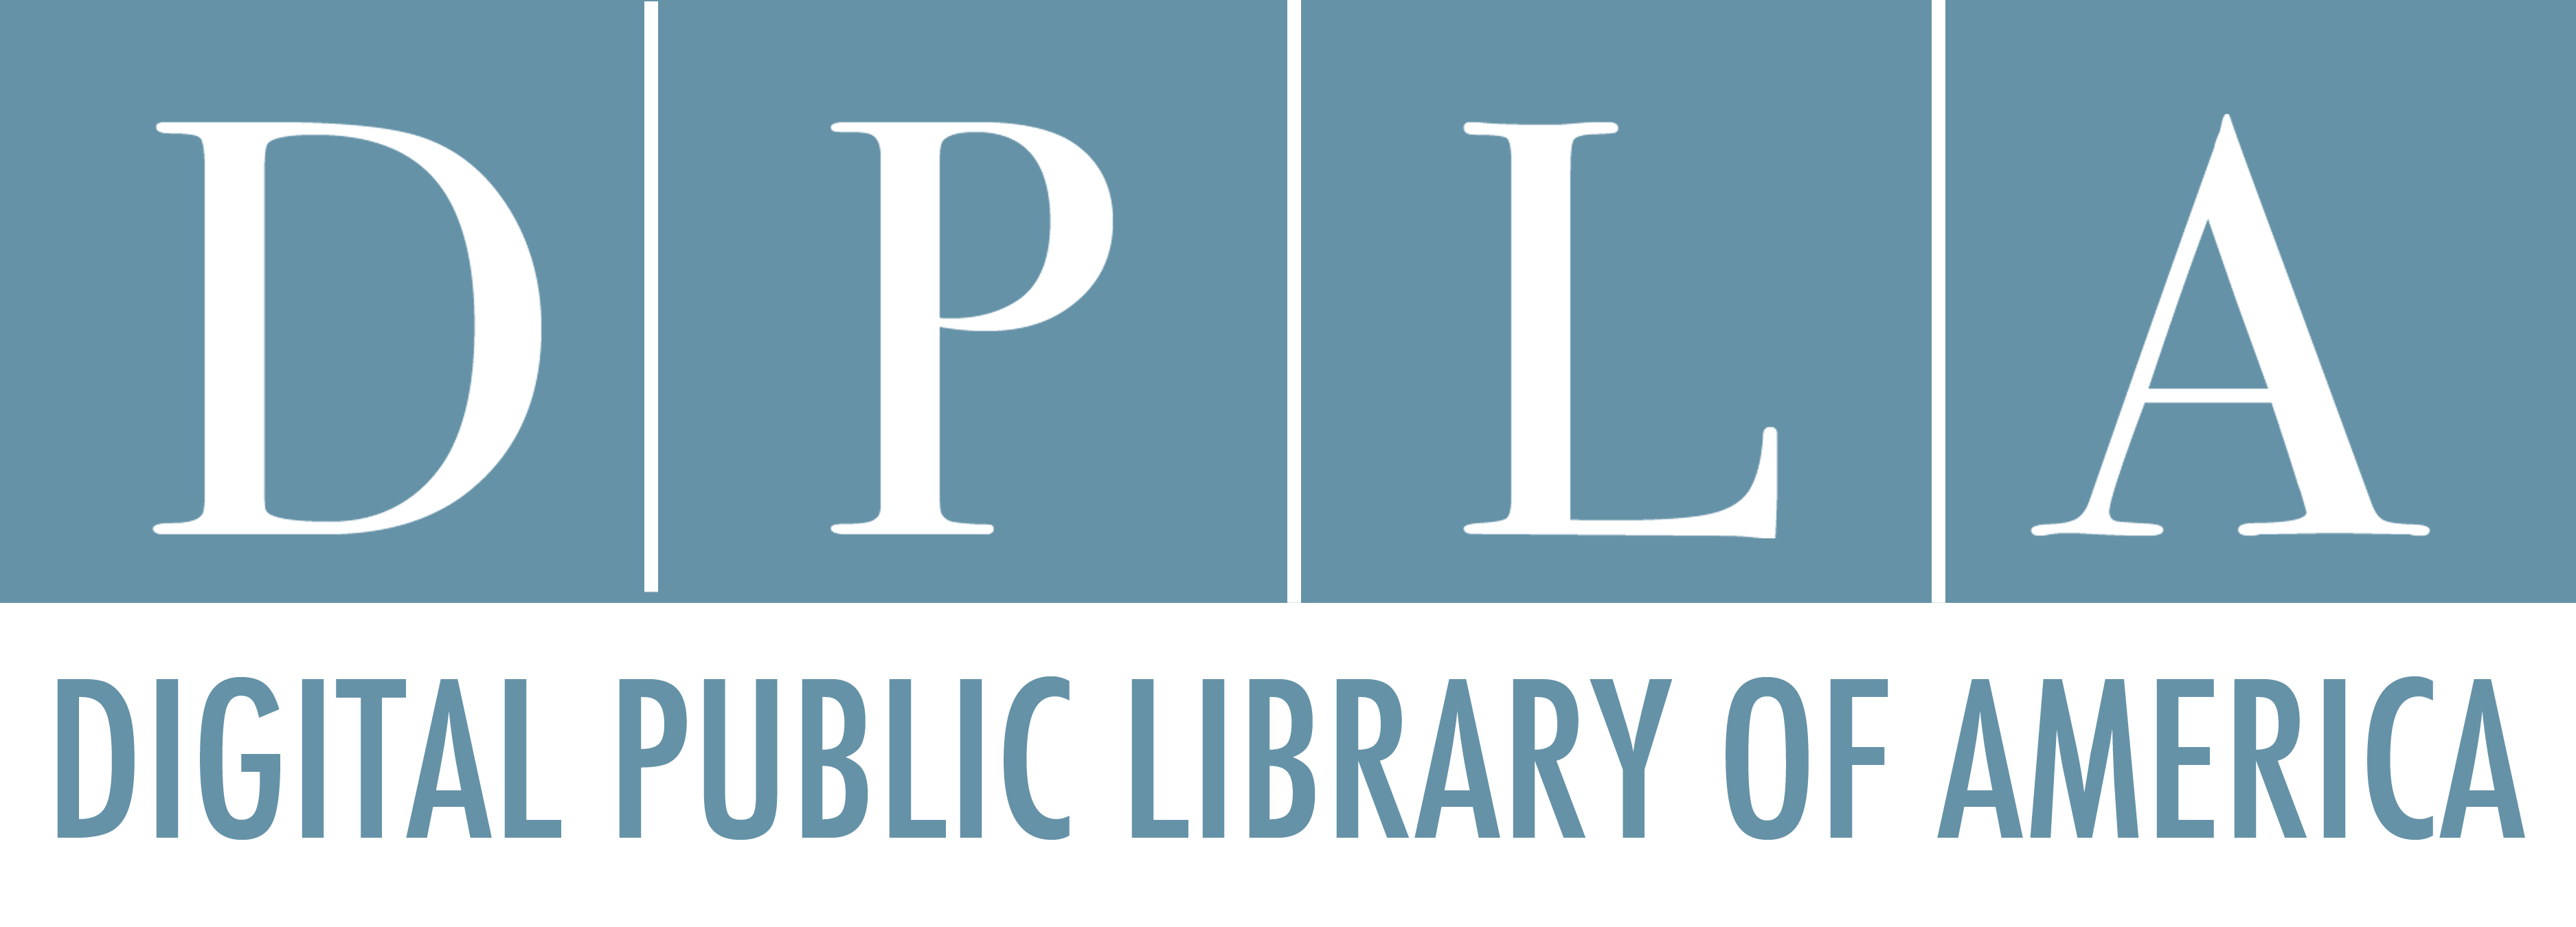 Image result for dpla logo